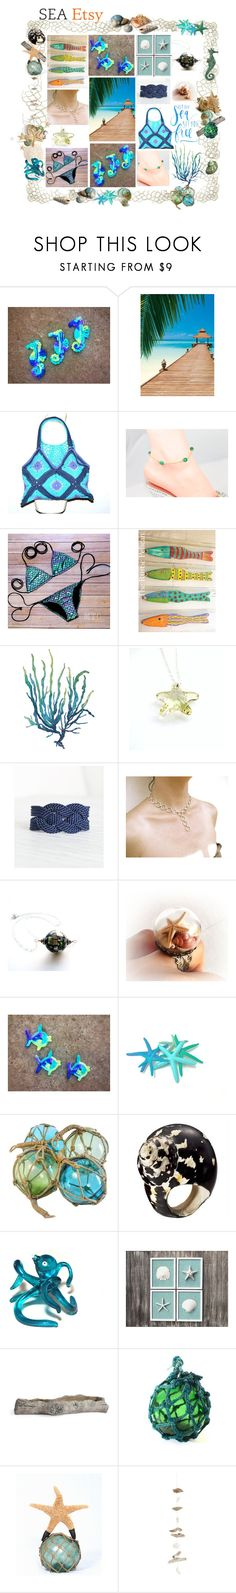 Sea Etsy by belladonnasjoy on Polyvore featuring Mesi Jilly, Brewster Home Fashions, Jamie Dietrich Designs, modern and rustic